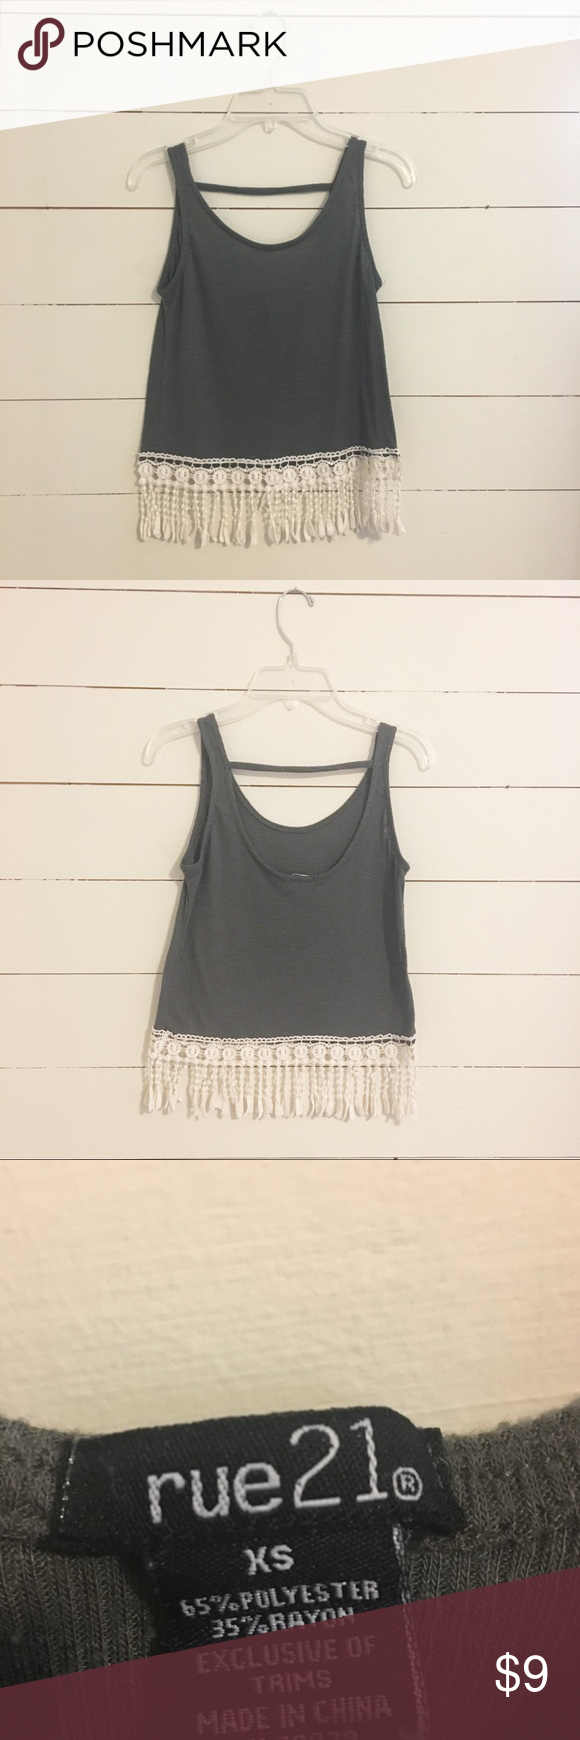 6267a3e3e6f75b Rue 21 Olive Crop Top with Lace Fringe XS Rue 21 Olive Crop Top with Lace  Fringe Detail XSmall Good condition. SmokeFree home. Rue21 Tops Crop Tops